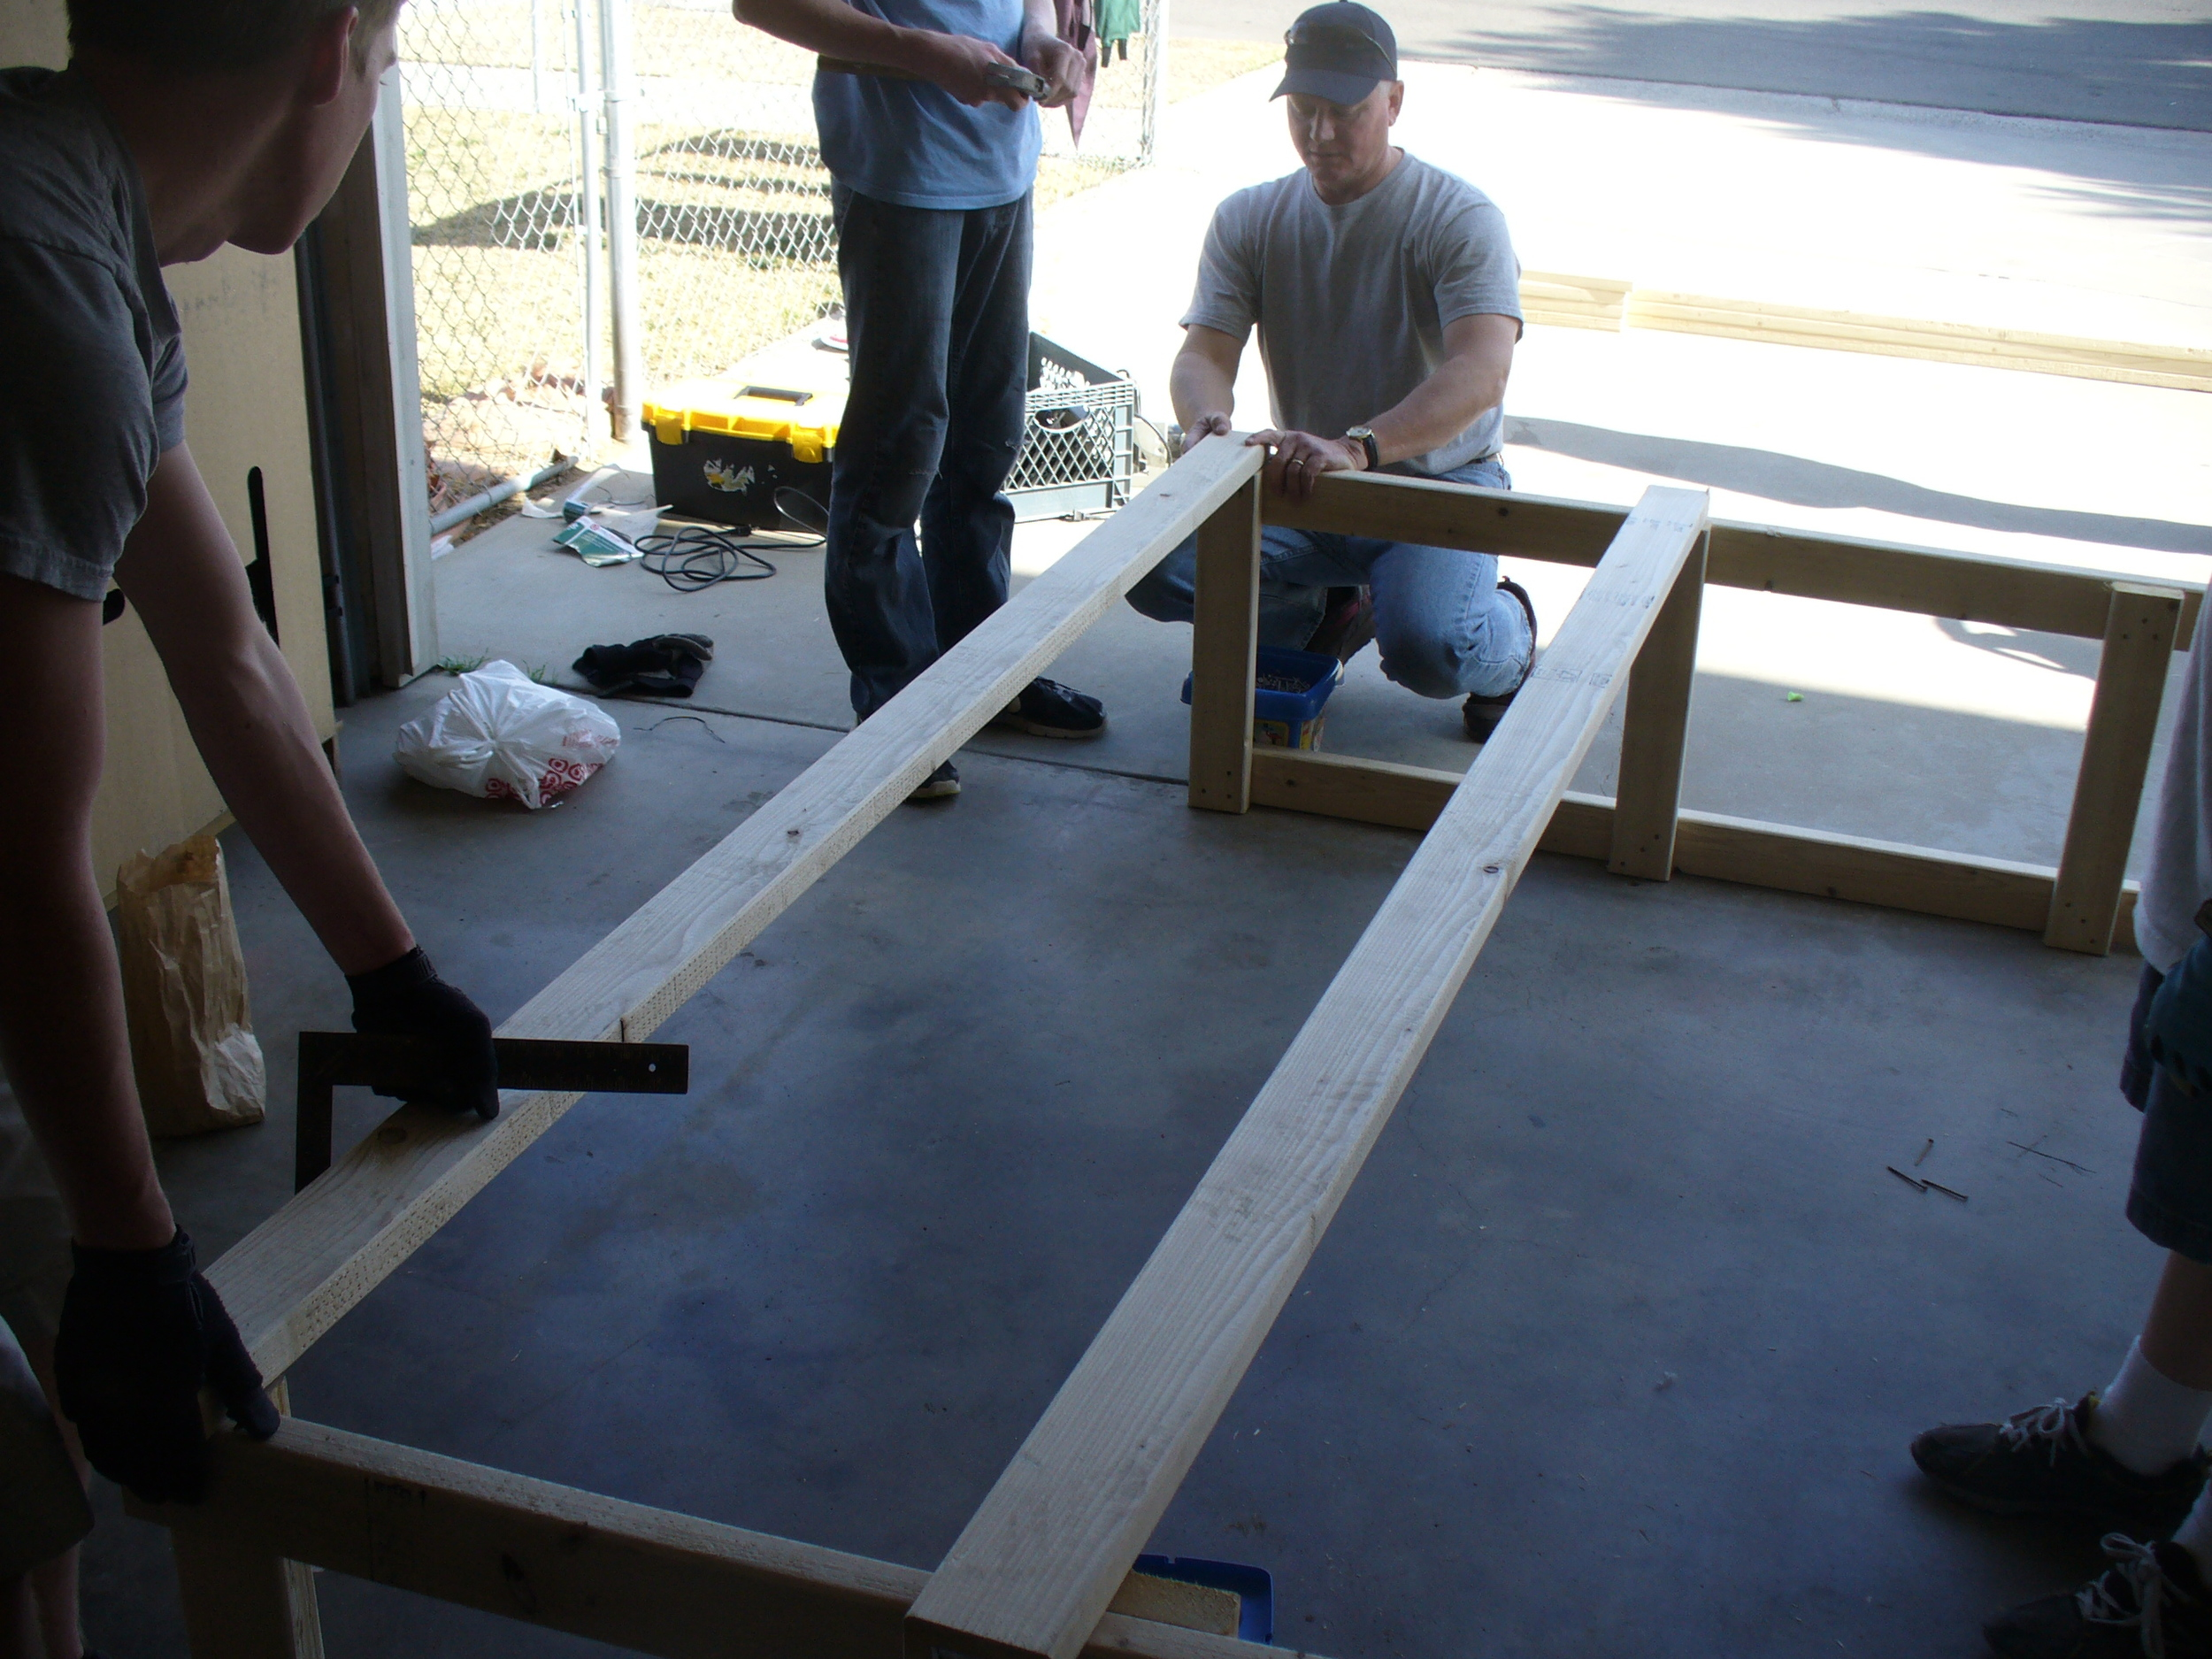 Eagle Scout project to build storage for the women's shelter.